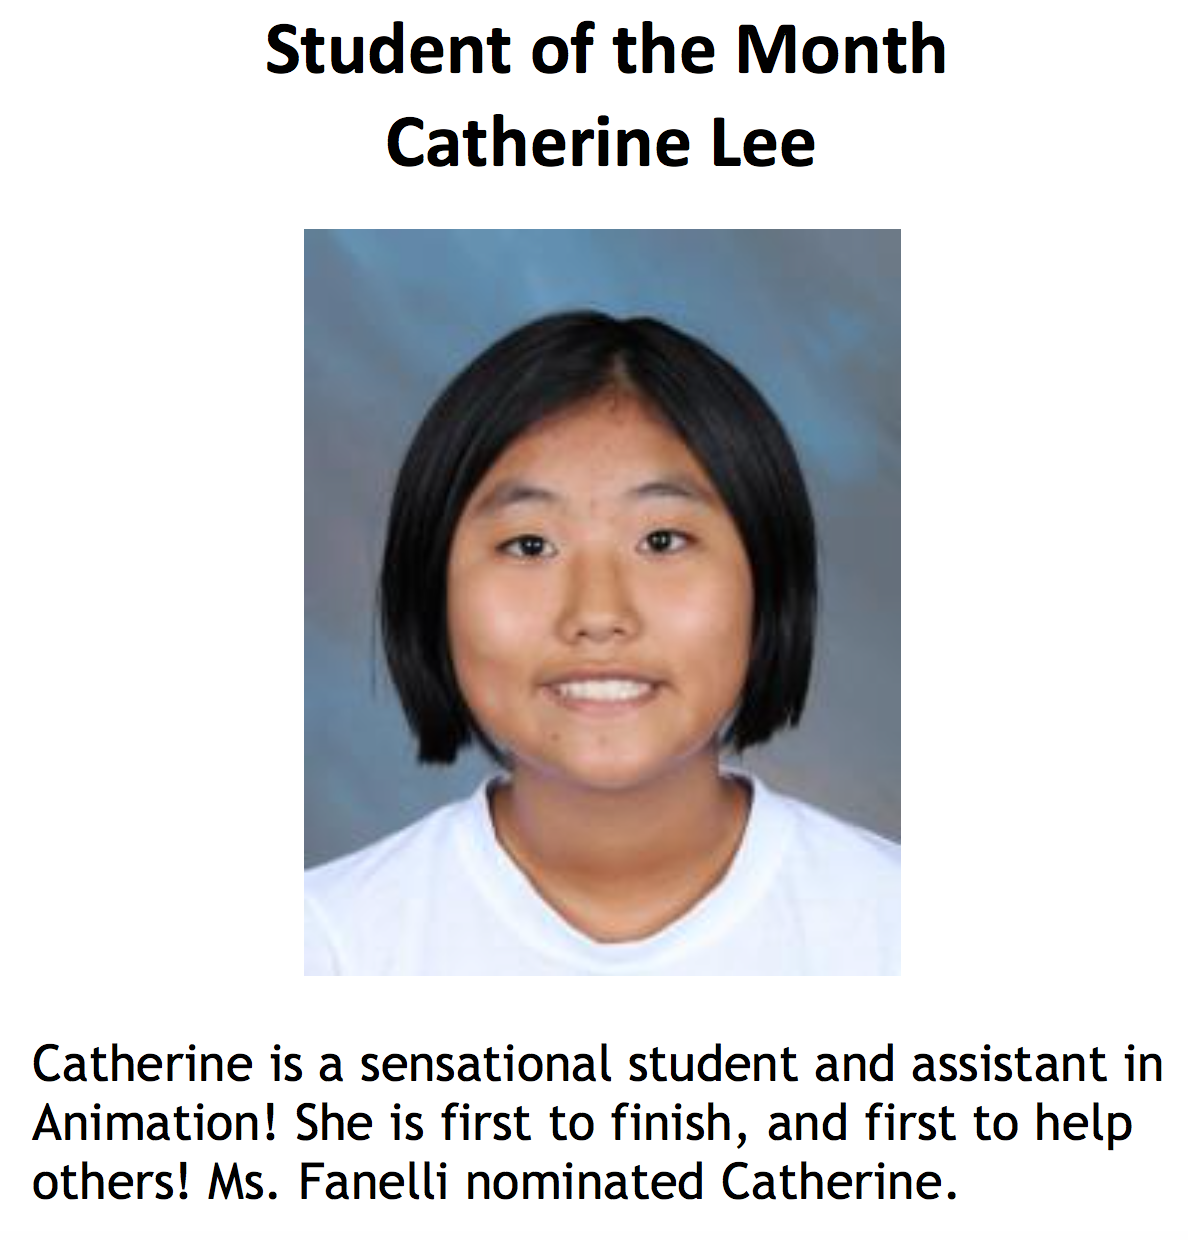 Student of the Month Catherine Lee